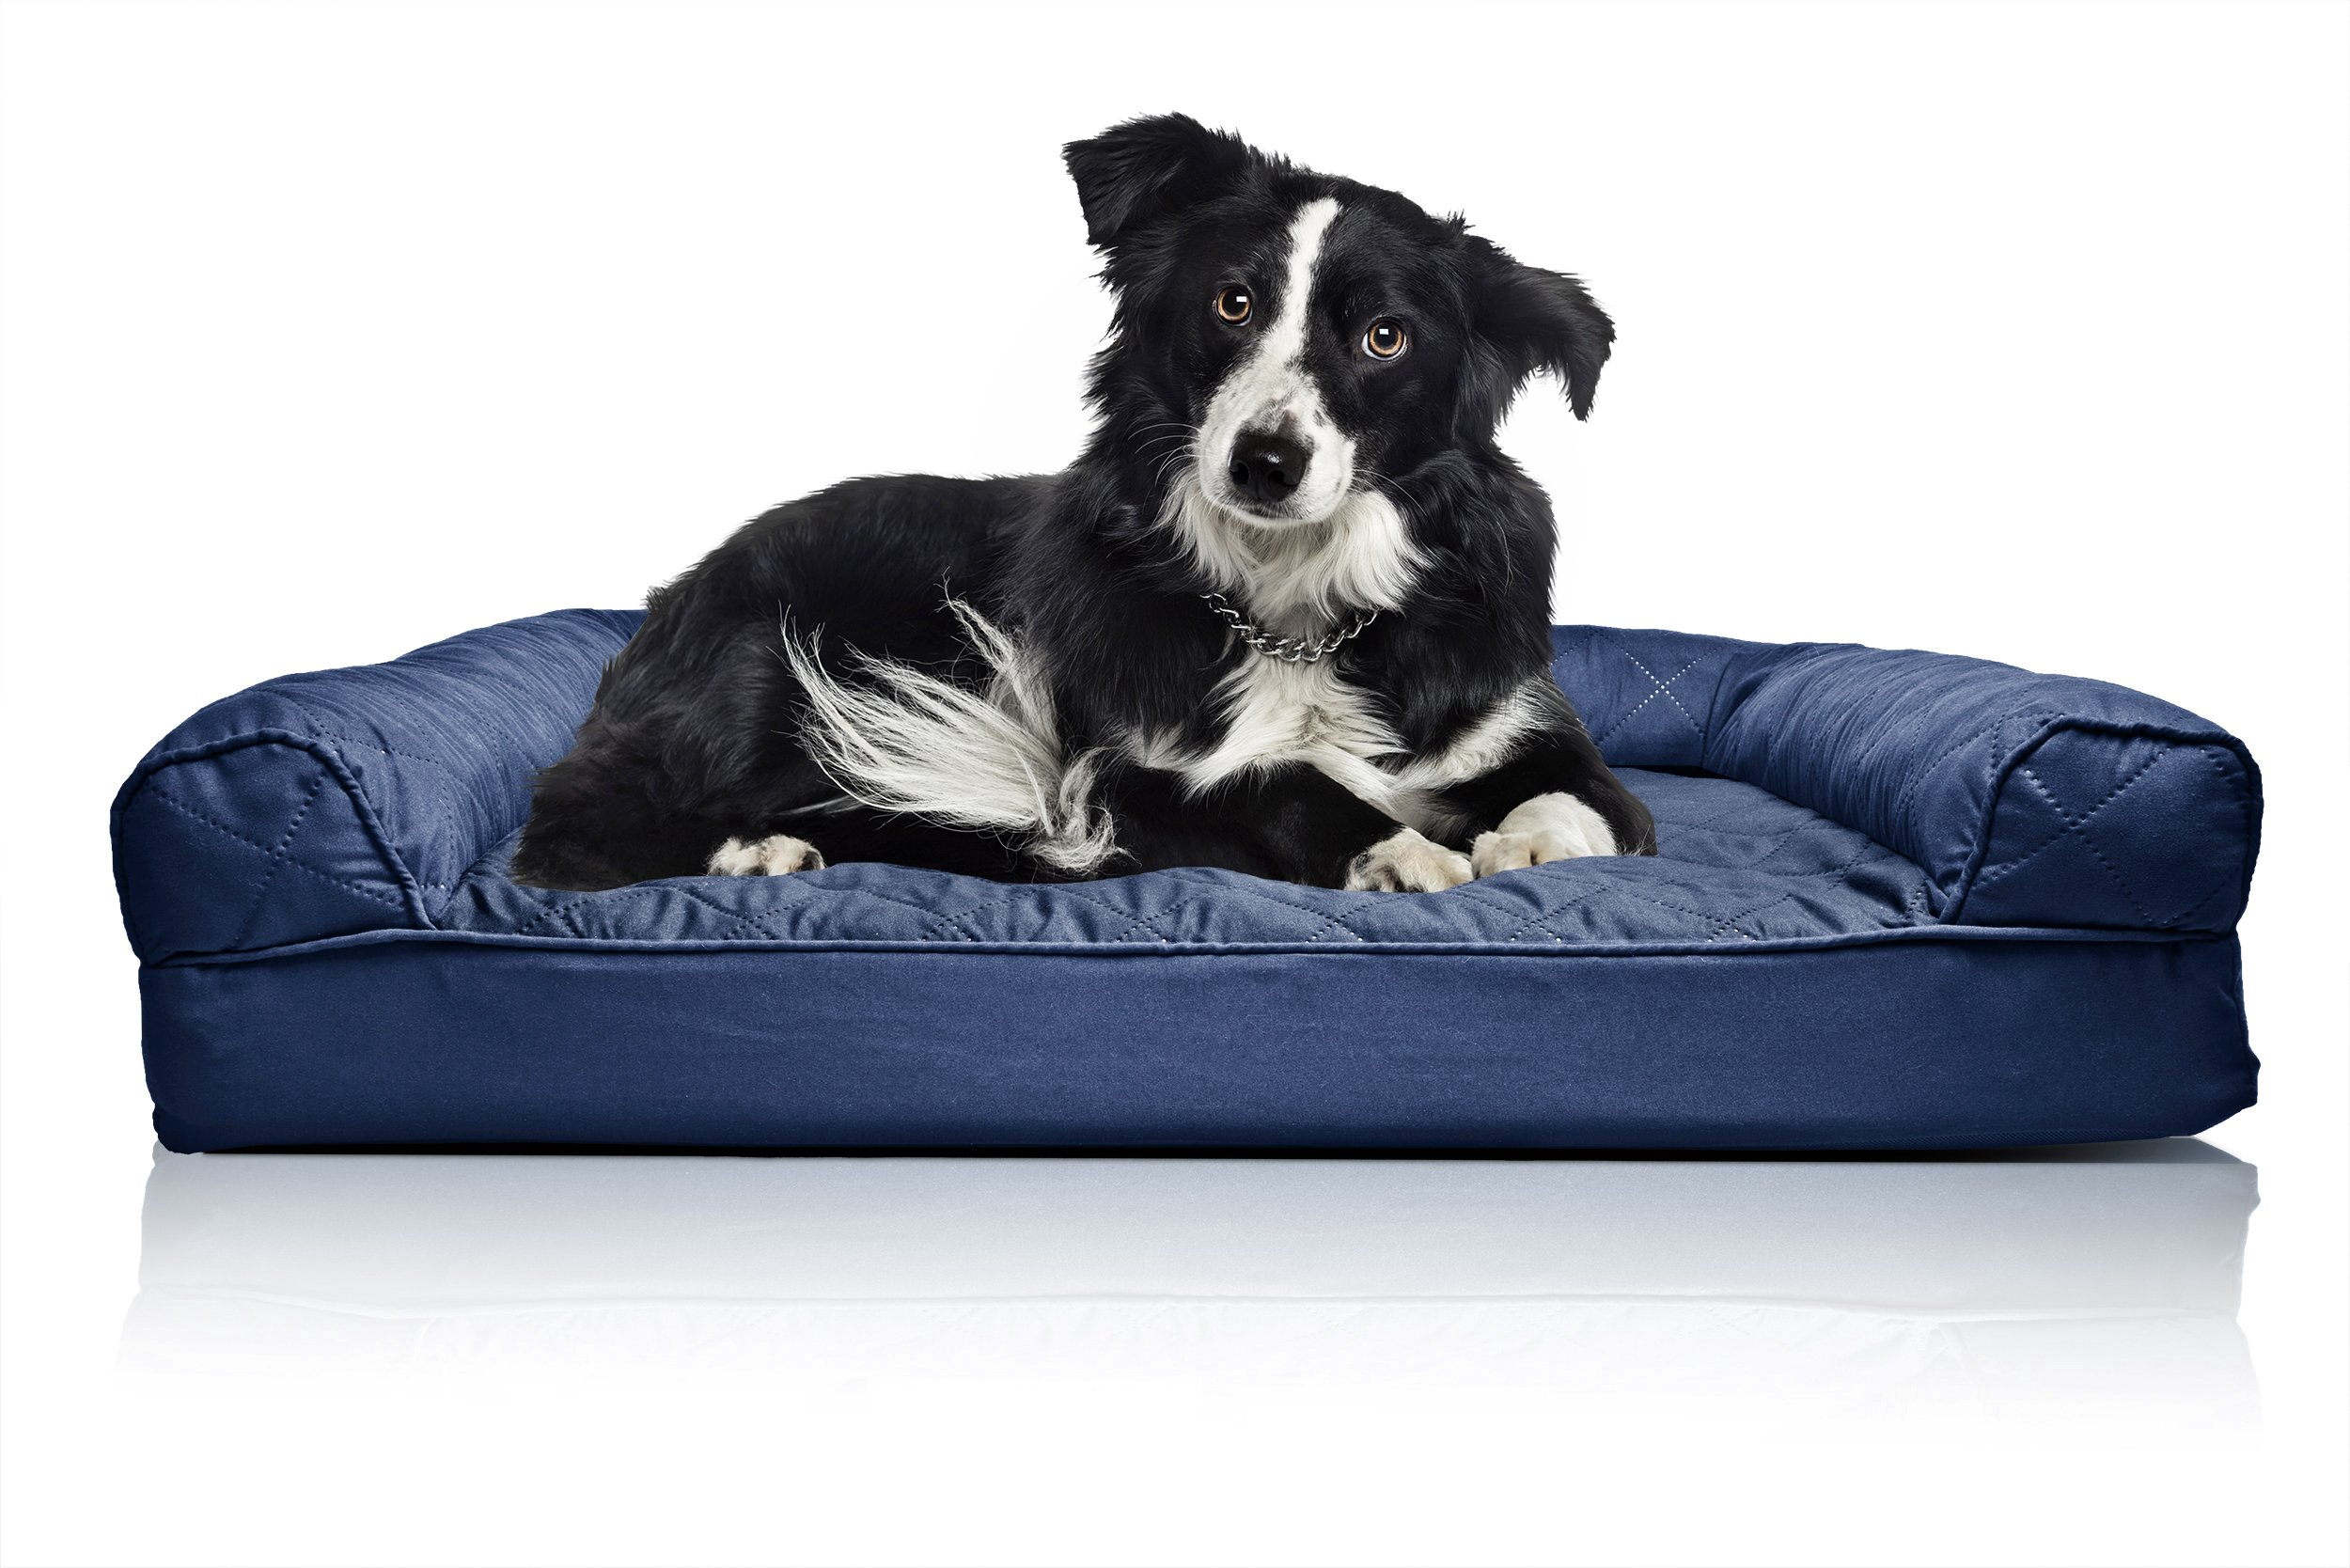 Furhaven Pet Orthopedic Quilted Sofa-Style Couch Pet Bed for Dogs and Cats, Navy, Large